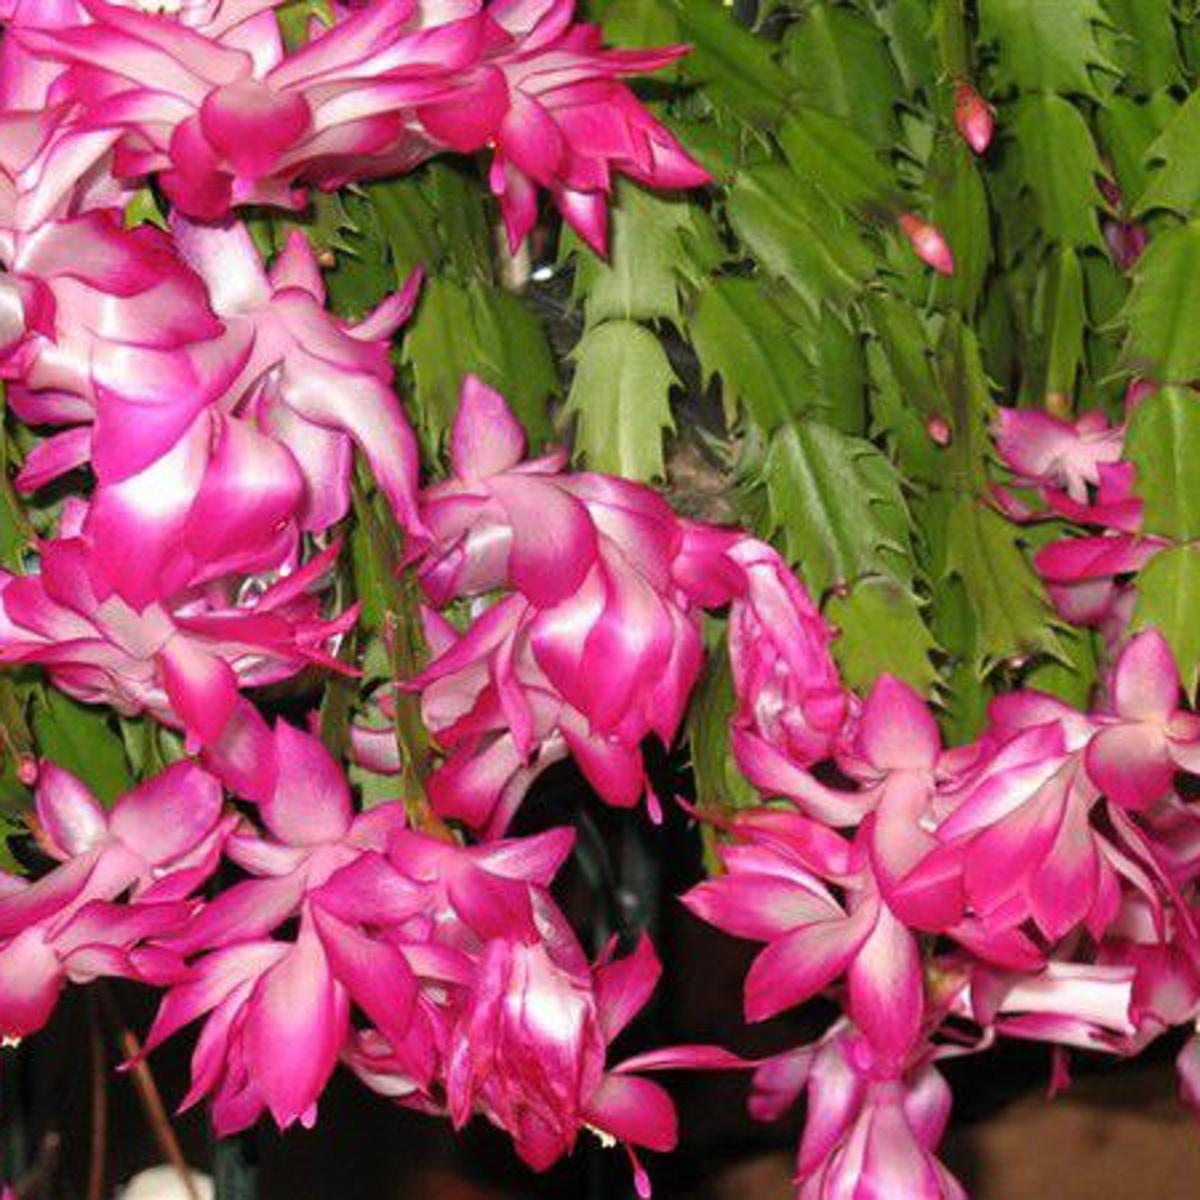 When Do Christmas Cactus Bloom.How To Get A Christmas Cactus To Bloom Home Garden Nola Com